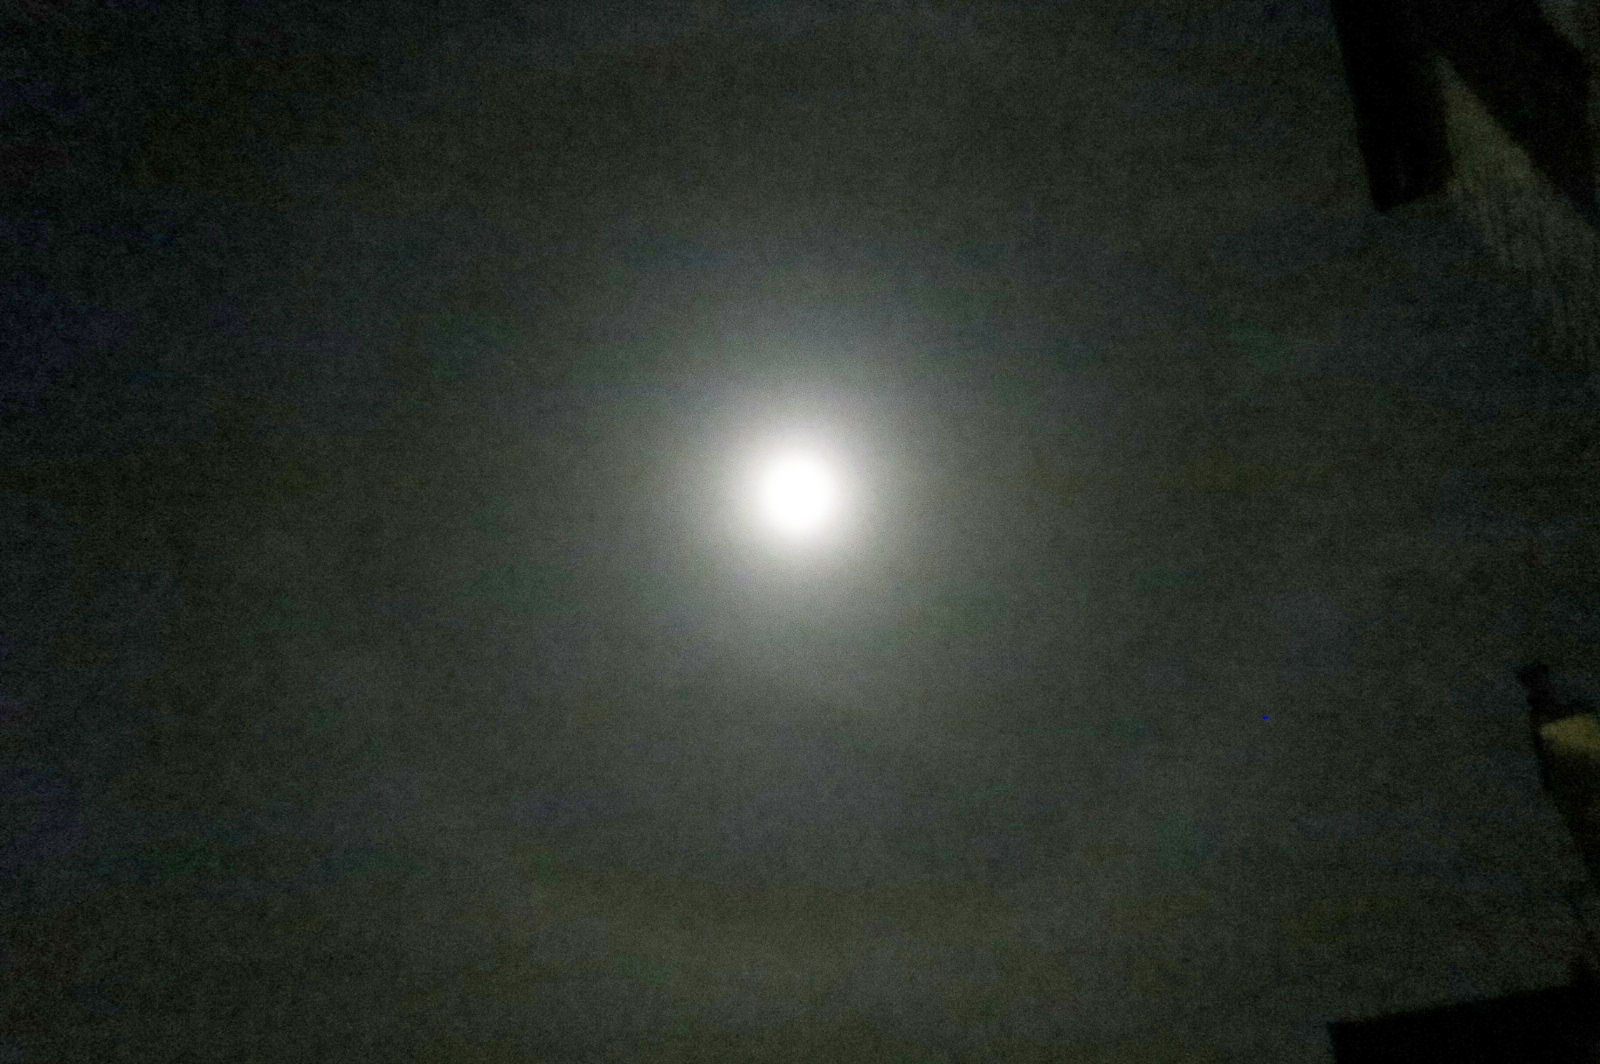 Lunar Halo by Bill Samson 09.03.17  21.56.  Canon PowerShot S200  f/2 - exposure 1/8 second ISO-1600.